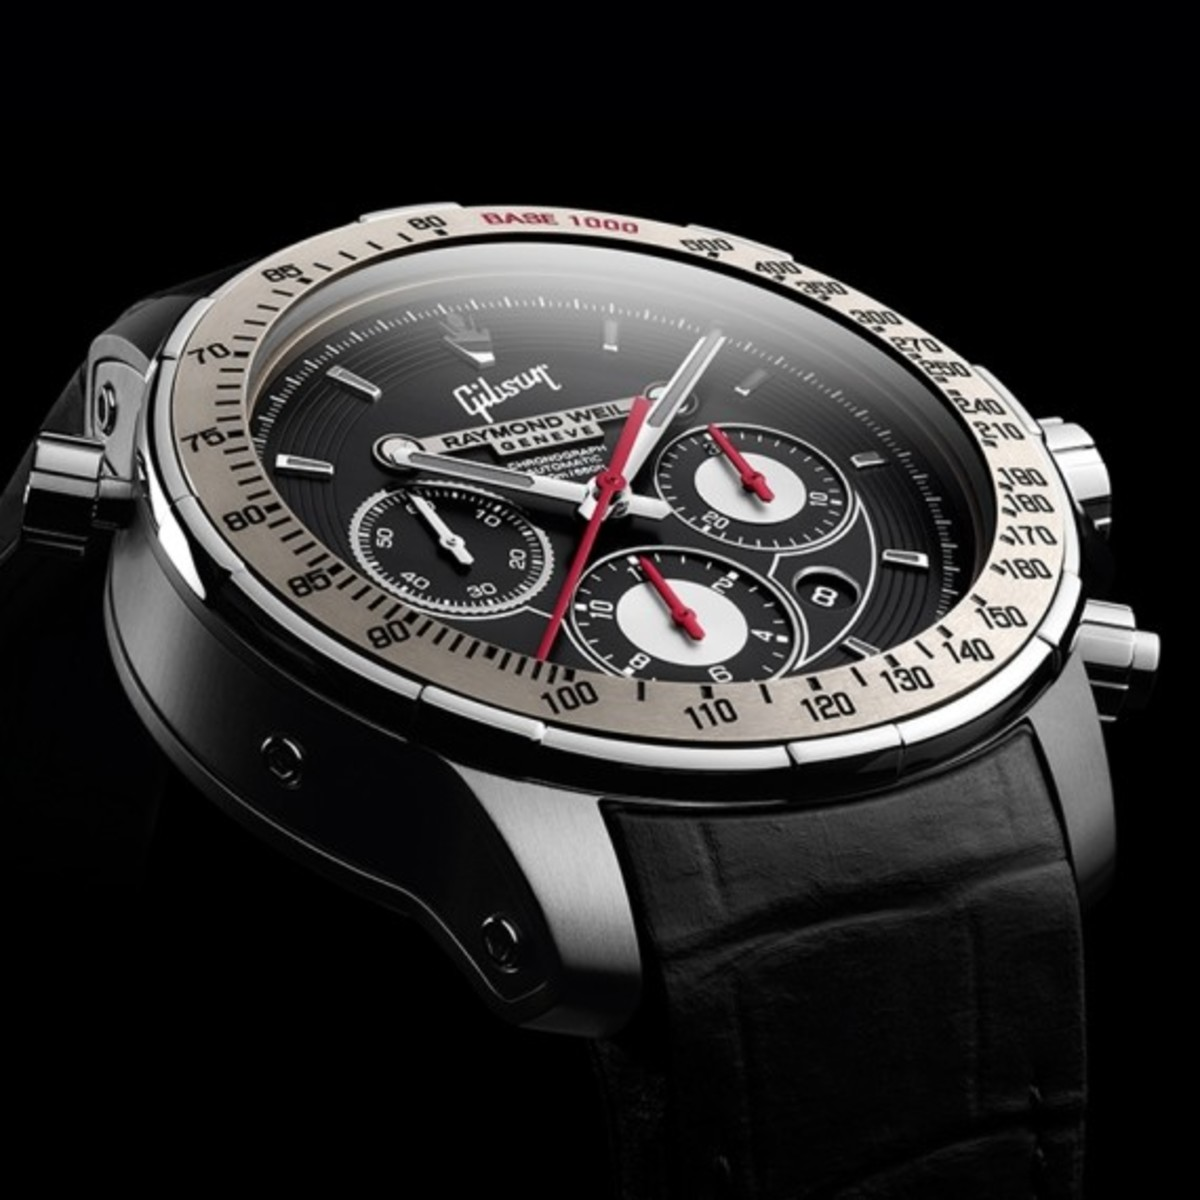 Raymond Weil Nabucco Limited Edition Watch - Inspired by Gibson Guitars - 2